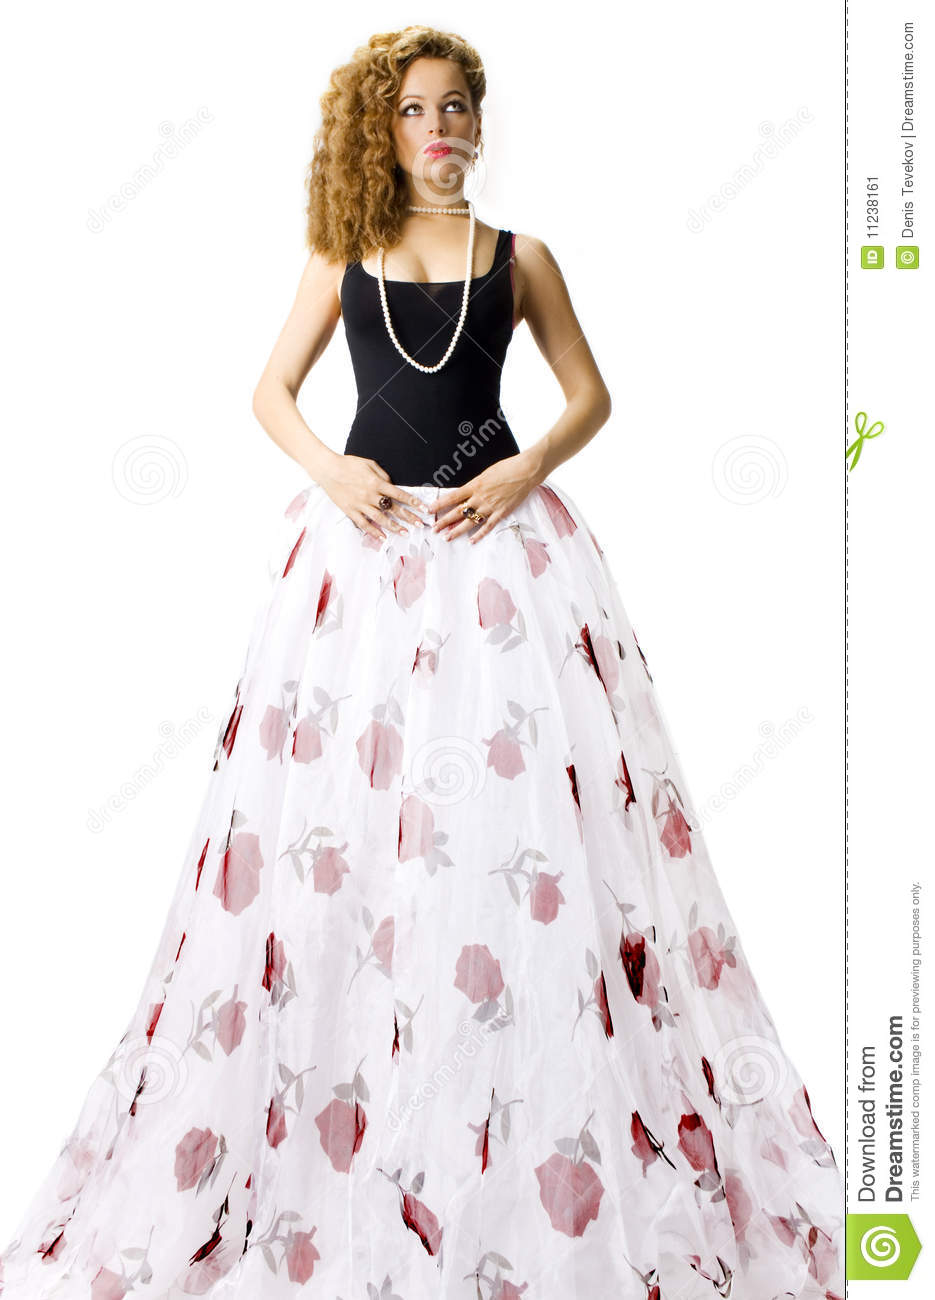 Woman In Long White Skirt Stock Image - Image: 11238161